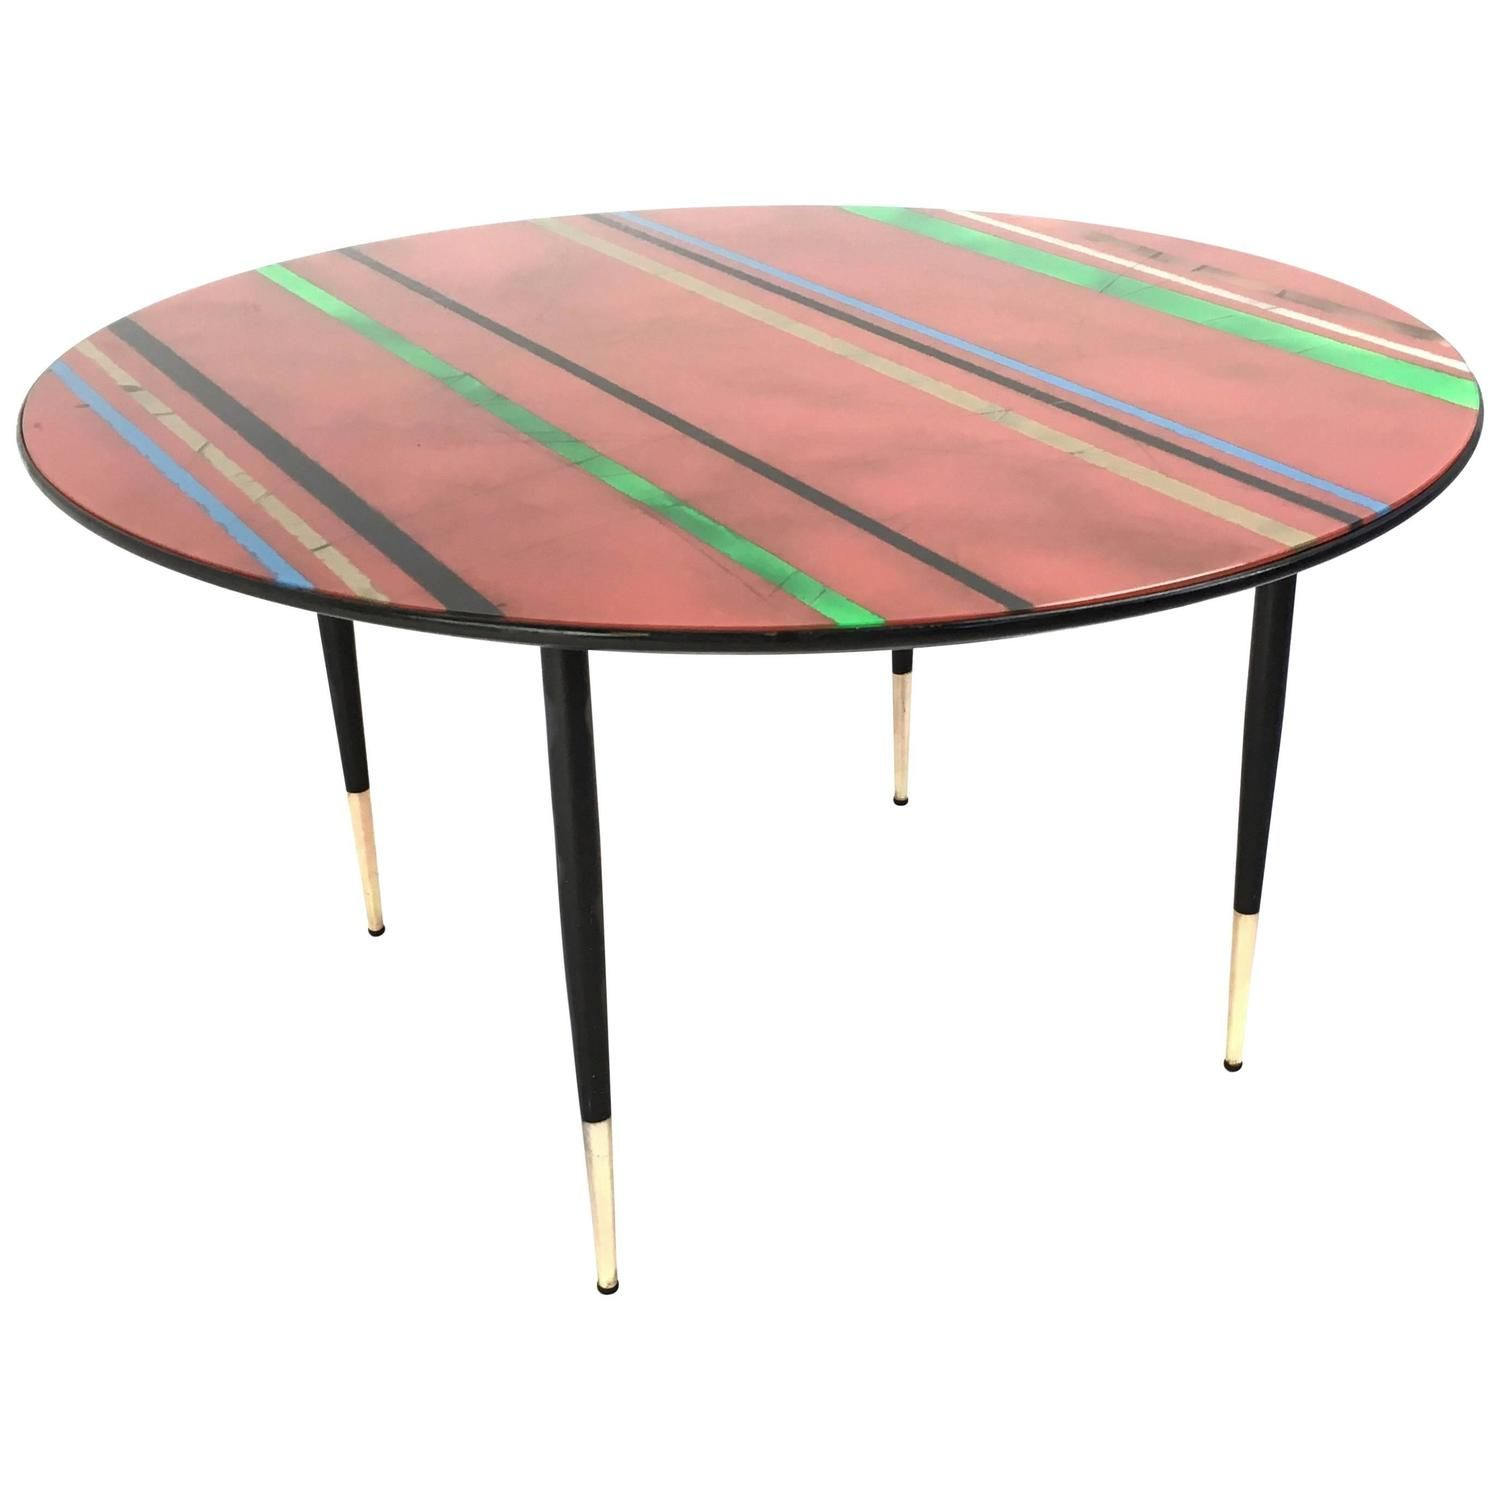 Midcentury Round Coffee Table With A Red Back Painted Glass Top Italy 1950s Colorful Coffee Table Coffee Table Upcycle Coffee Table [ 1500 x 1500 Pixel ]